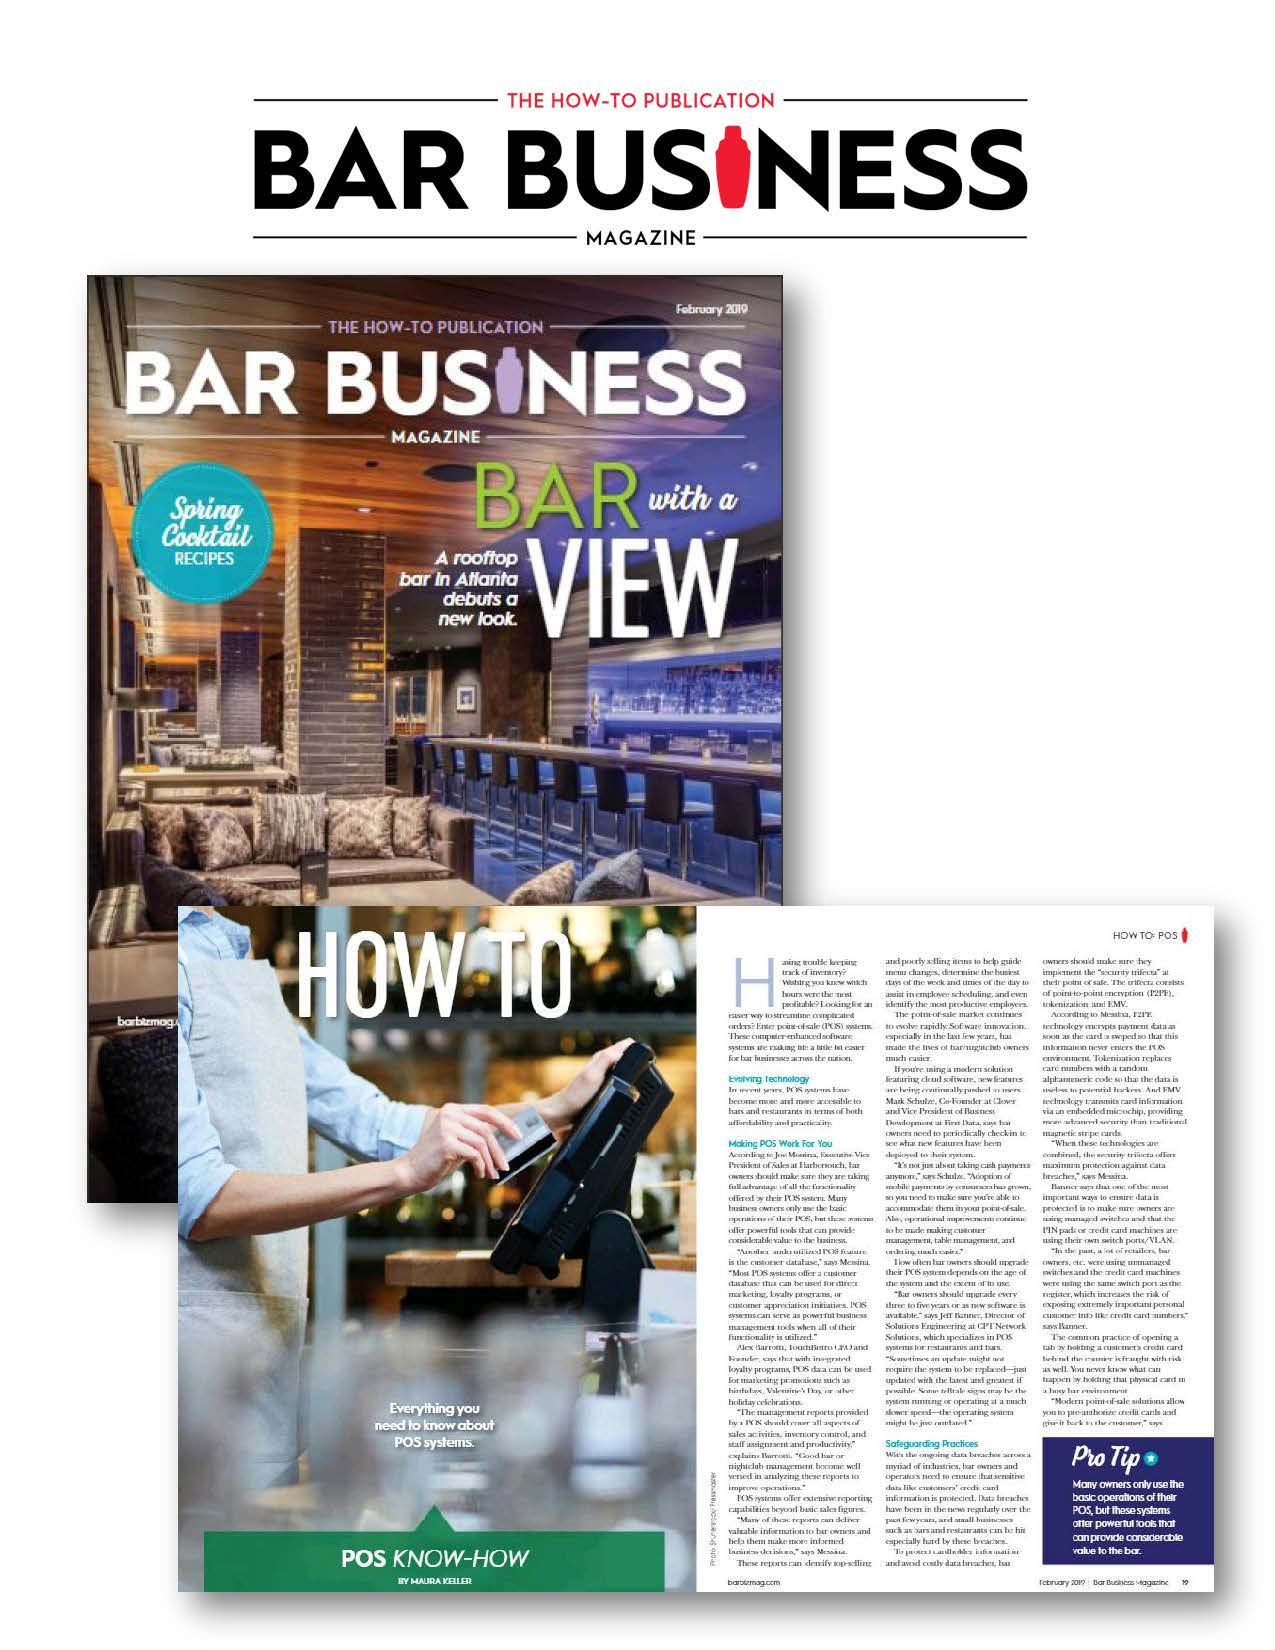 Bar Business Magazine features CPT Network Solutions